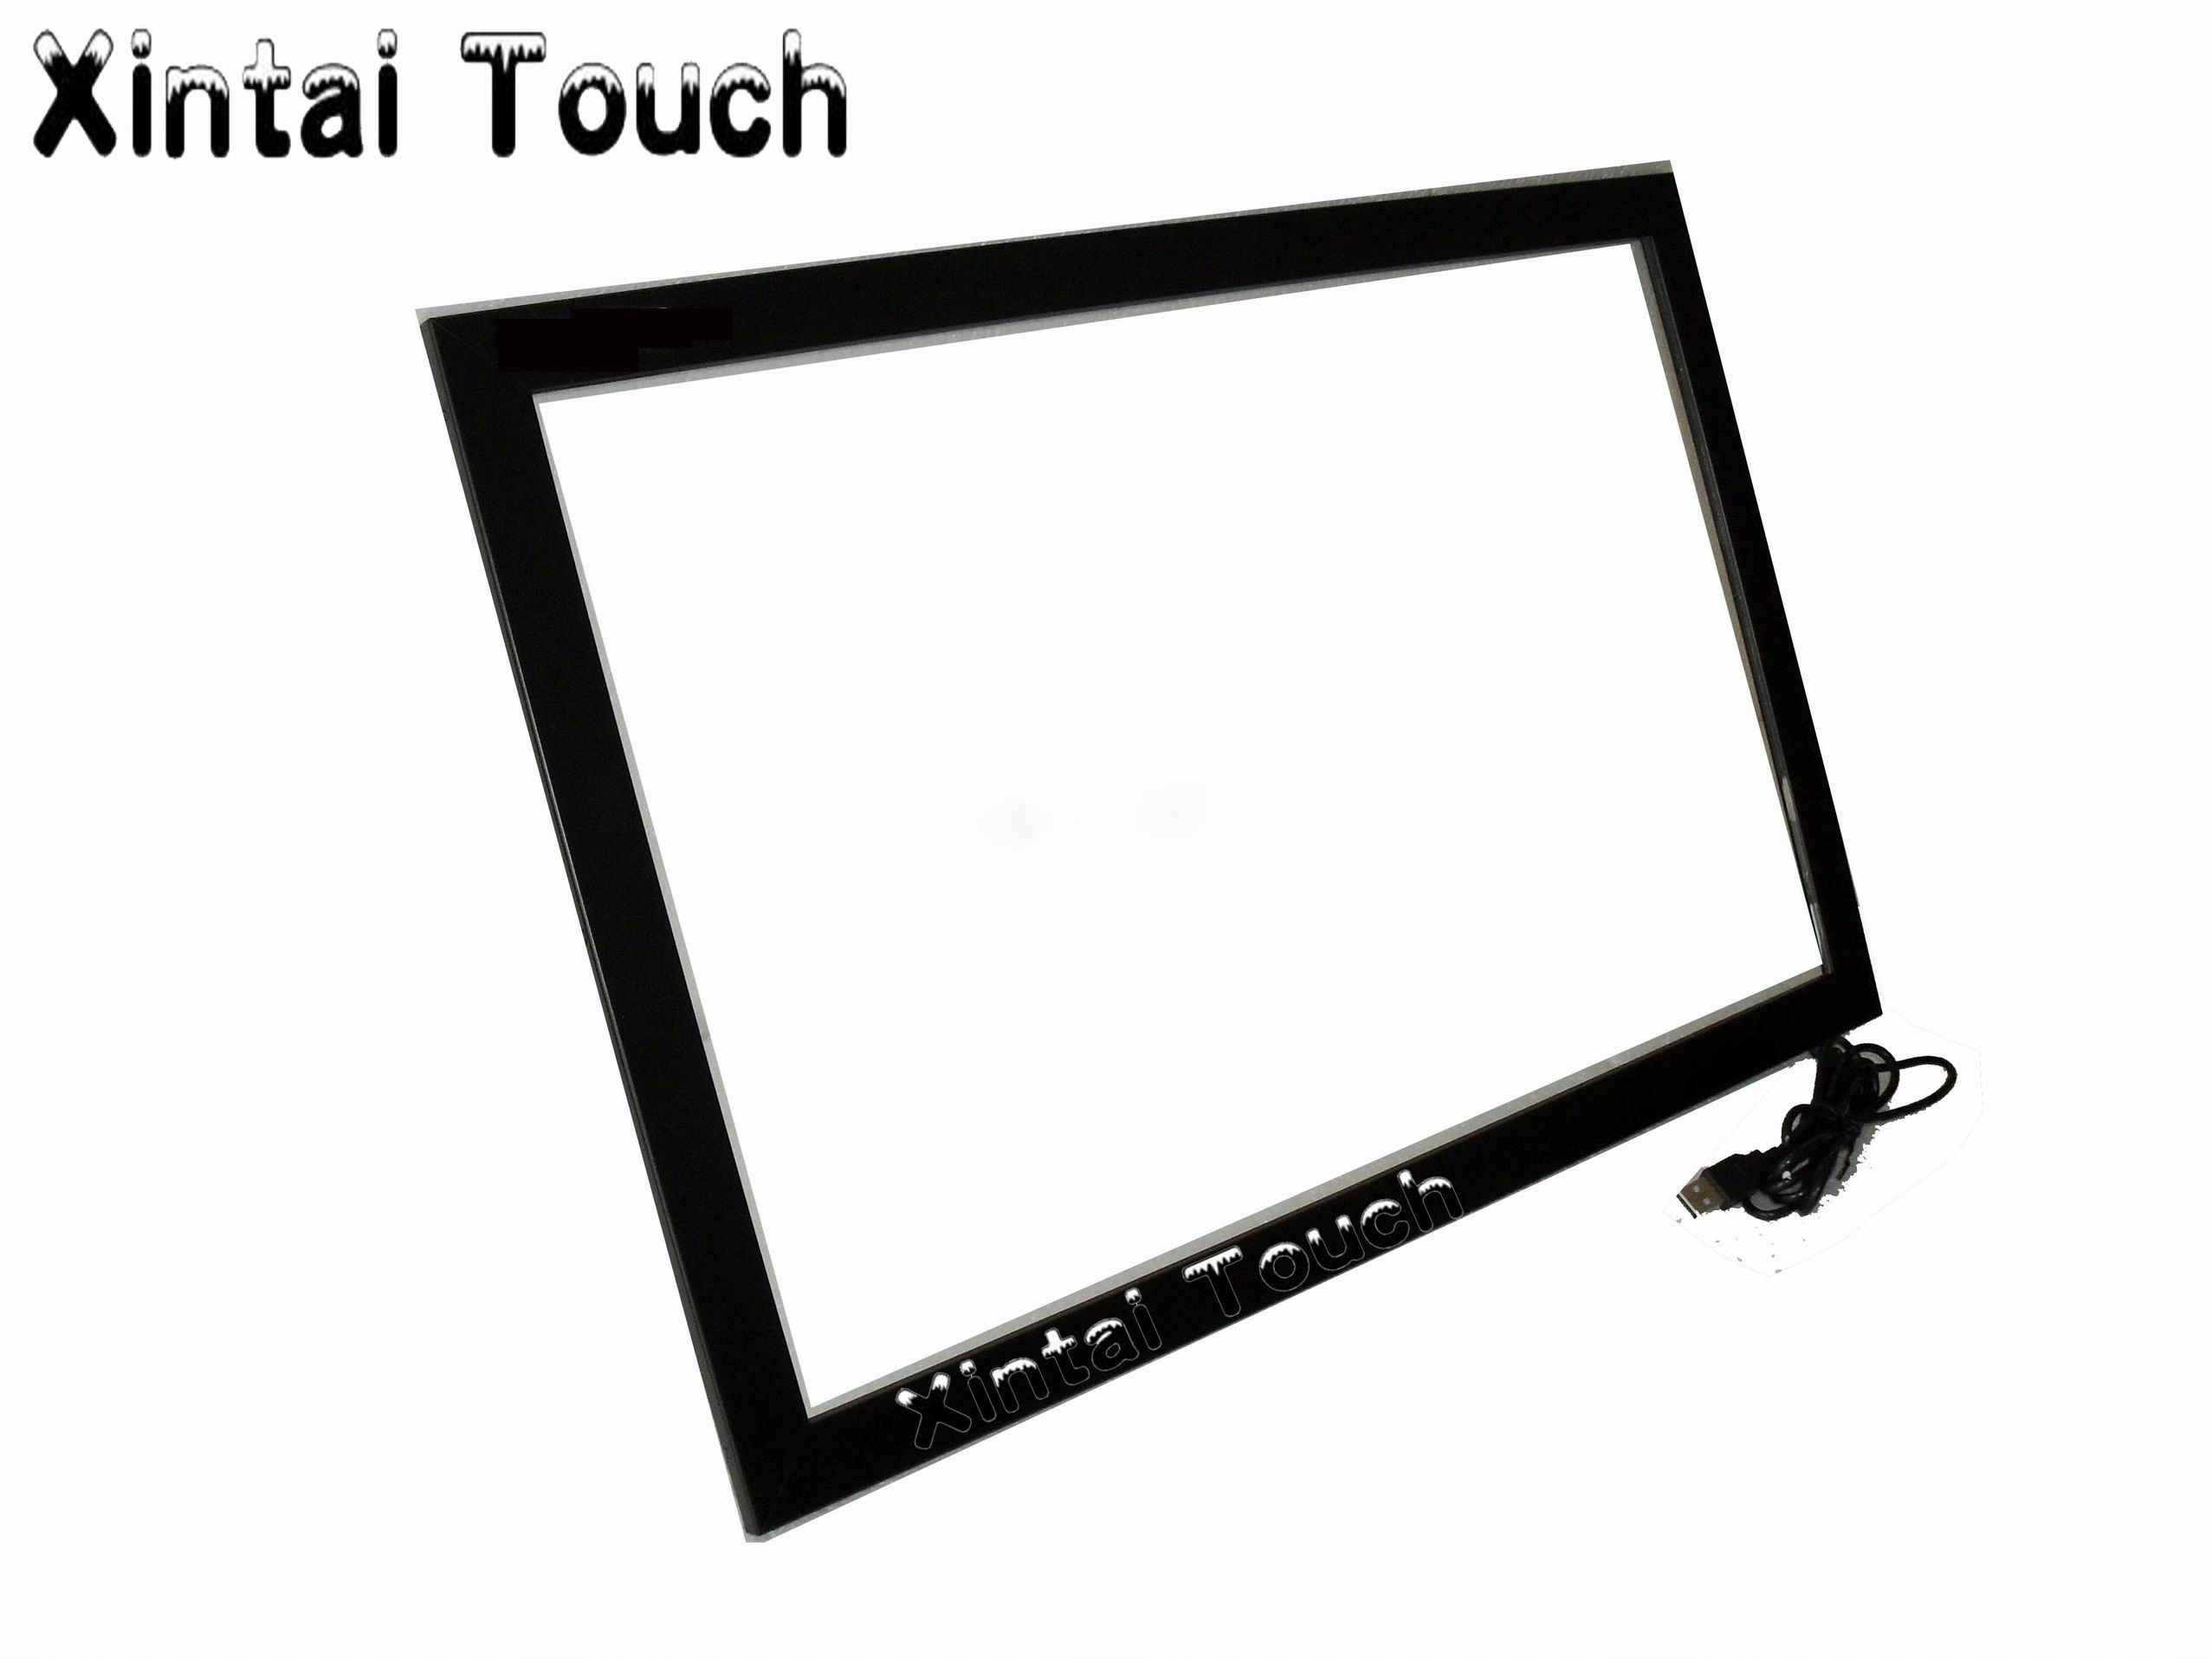 65 IR multi touch screen 20 points infrared ir sensor multi touch screen frame for lcd monitor and gaming 19 inch ir touch screen frame truly 6 points infrared multi touch screen kit with usb interace driver free